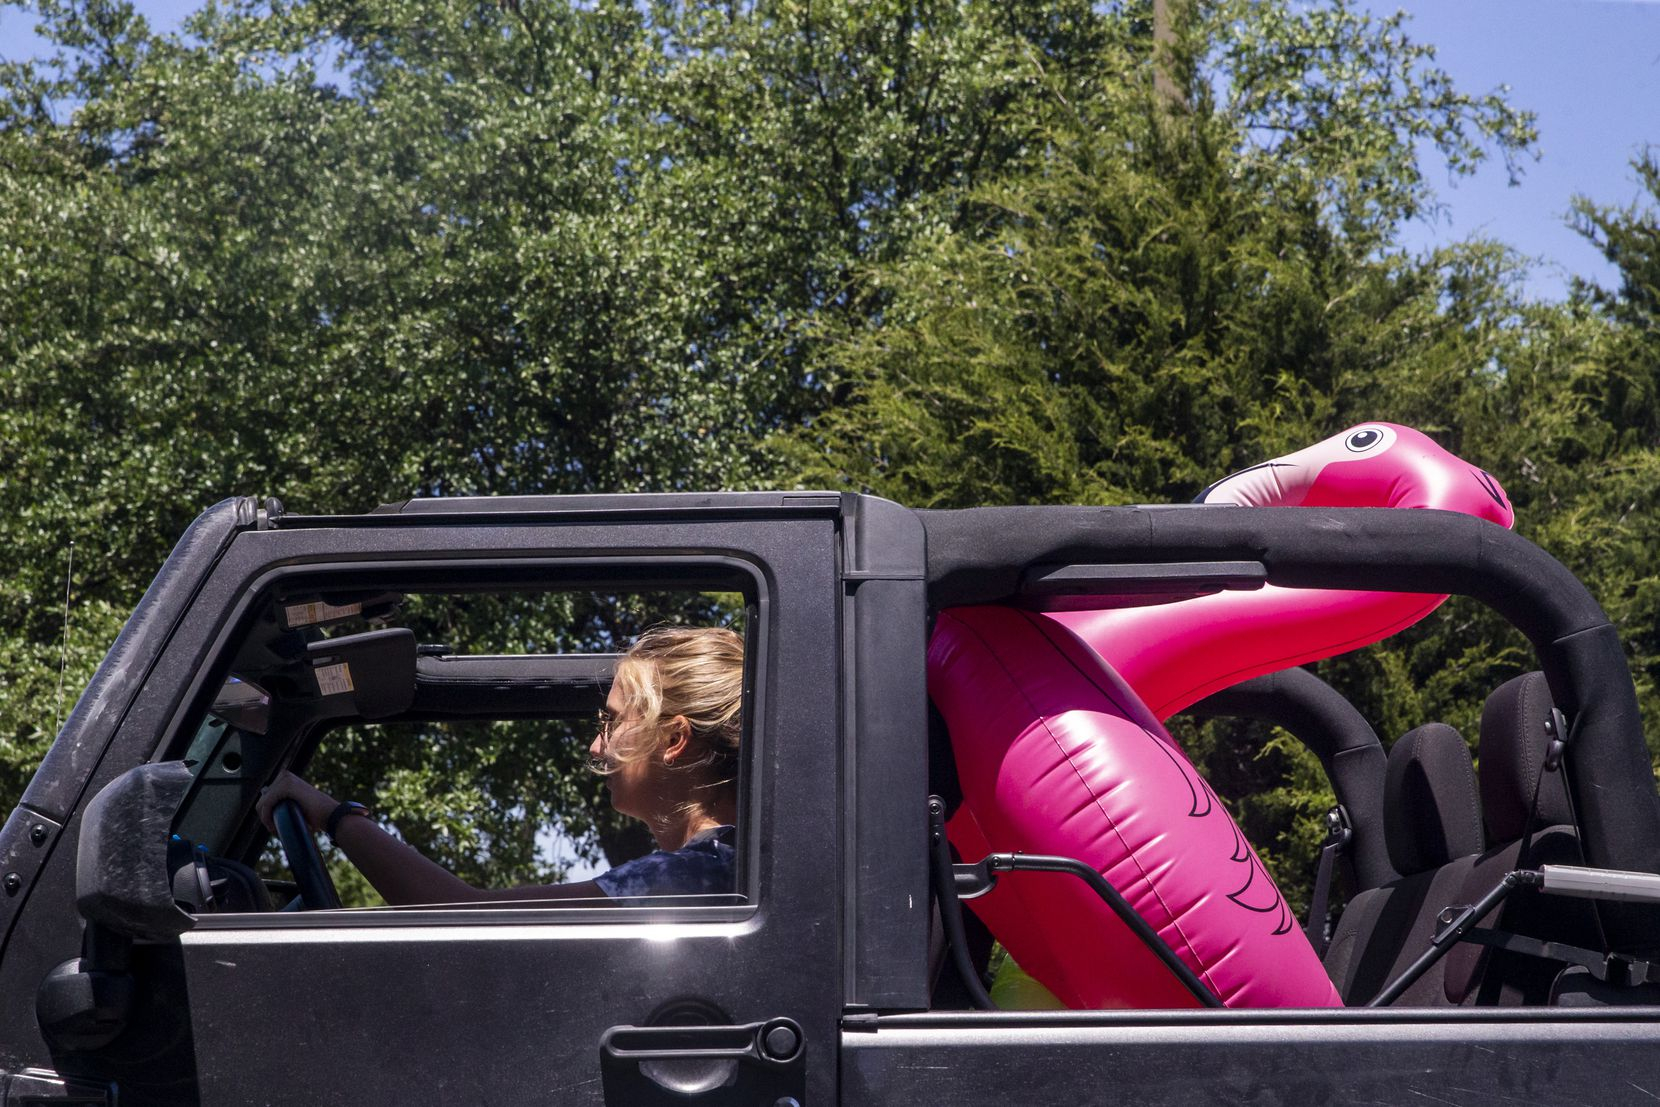 Karina Boyea (center) and her sister Marley (not pictured, passenger seat) drive to a pool party held by a small group of friends in Dallas on Friday, May 1, 2020. Marley Boyea said they're not generally happy about the state reopening businesses, and have no plans to visit malls or theaters any time soon — instead, they're opting to spend time outside.